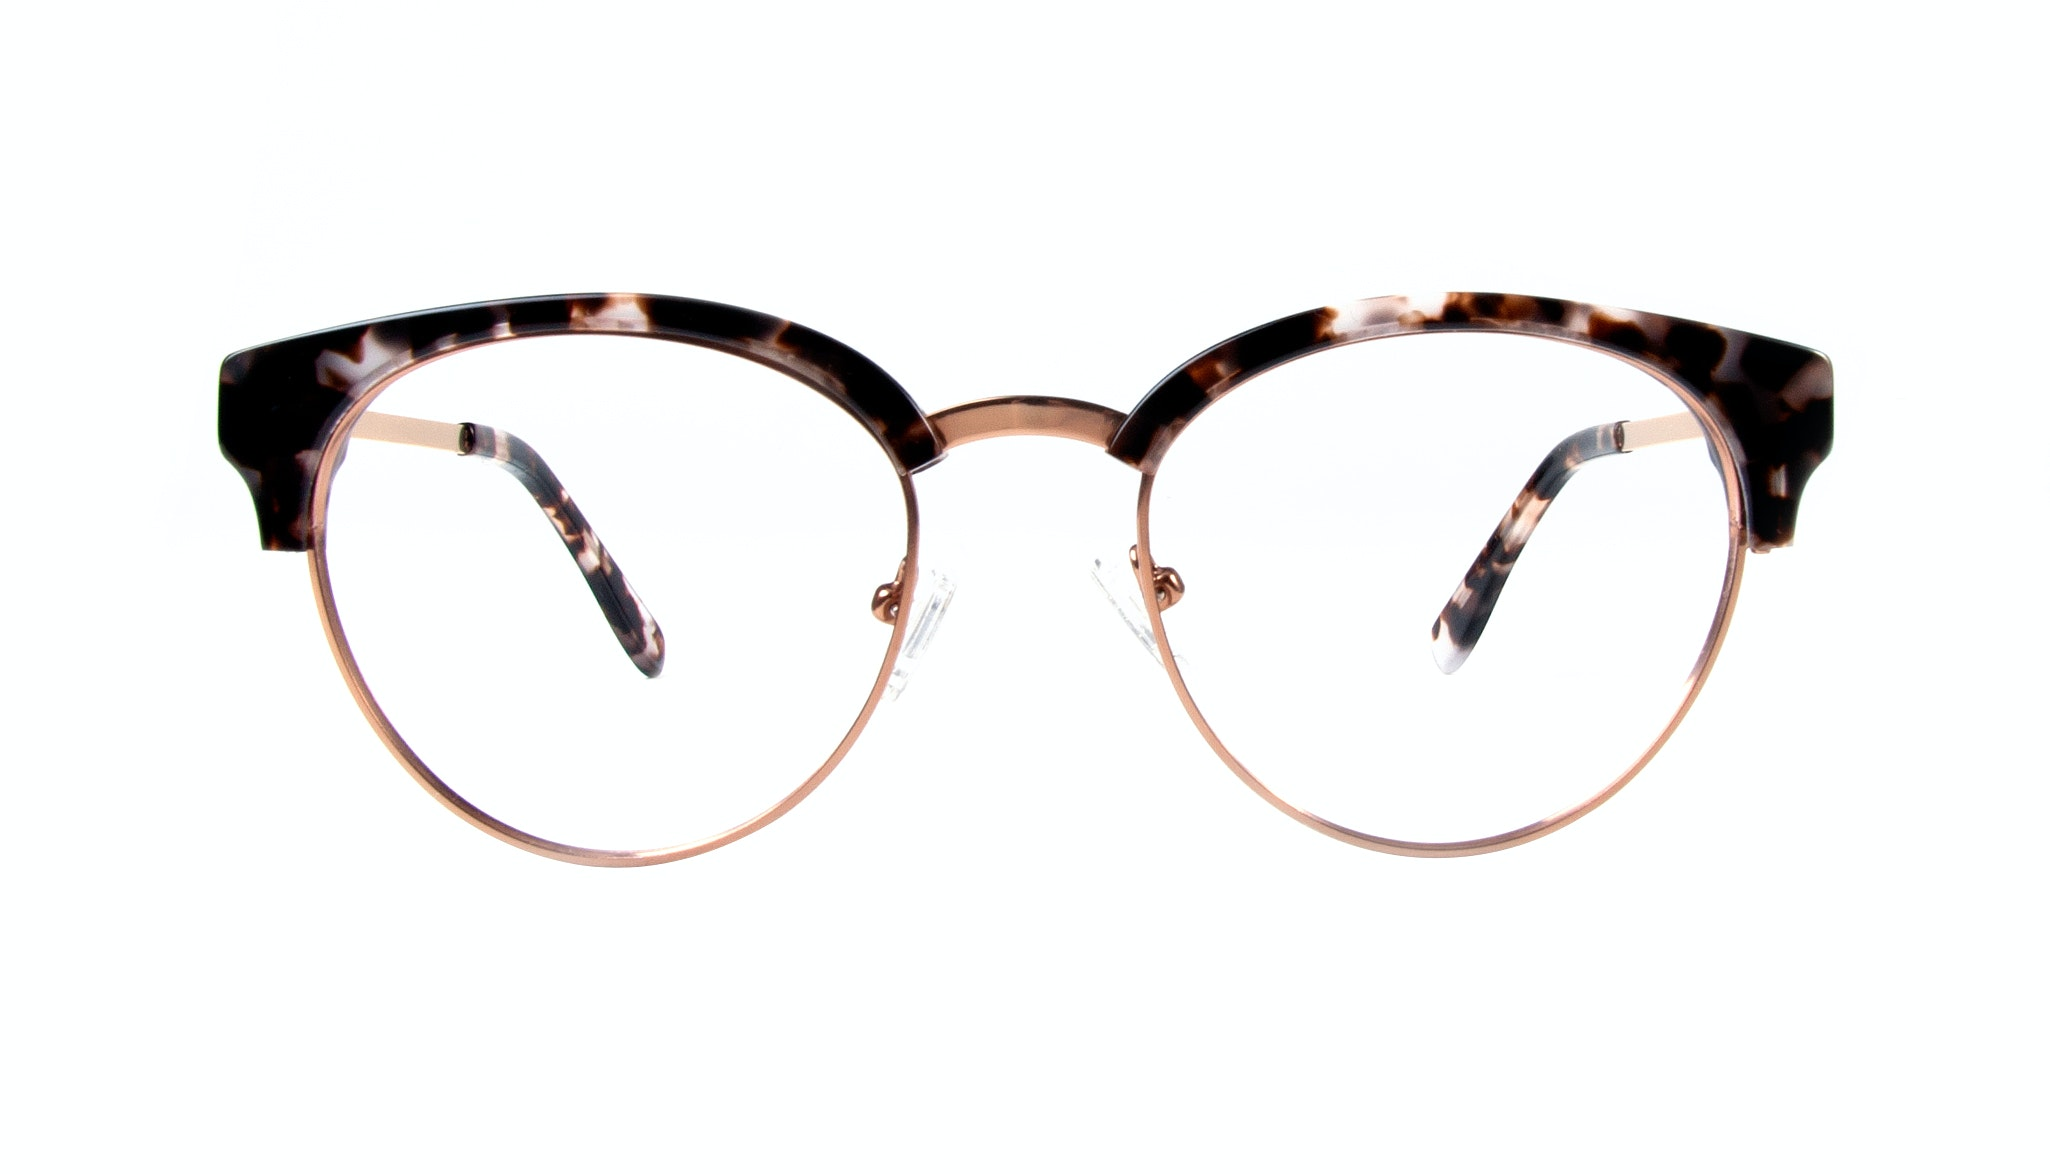 Affordable Fashion Glasses Round Eyeglasses Women Allure Mocha Tortoise Front